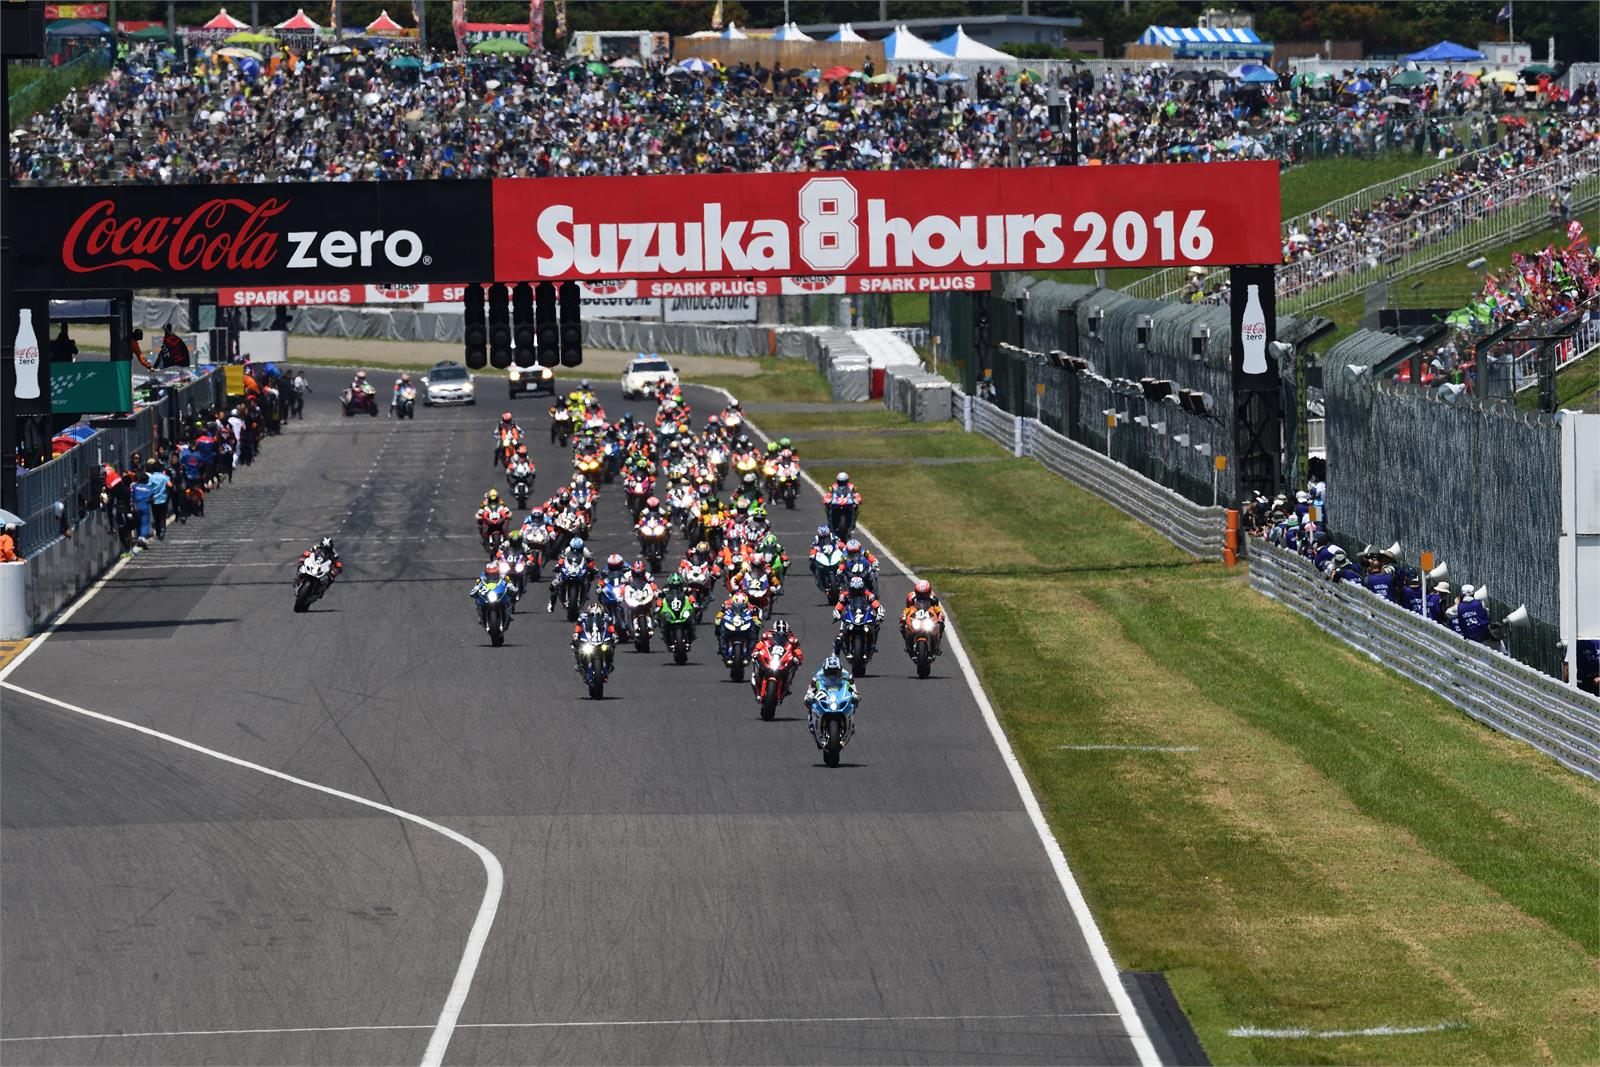 Suzuka 8 Hours Race Start 2016